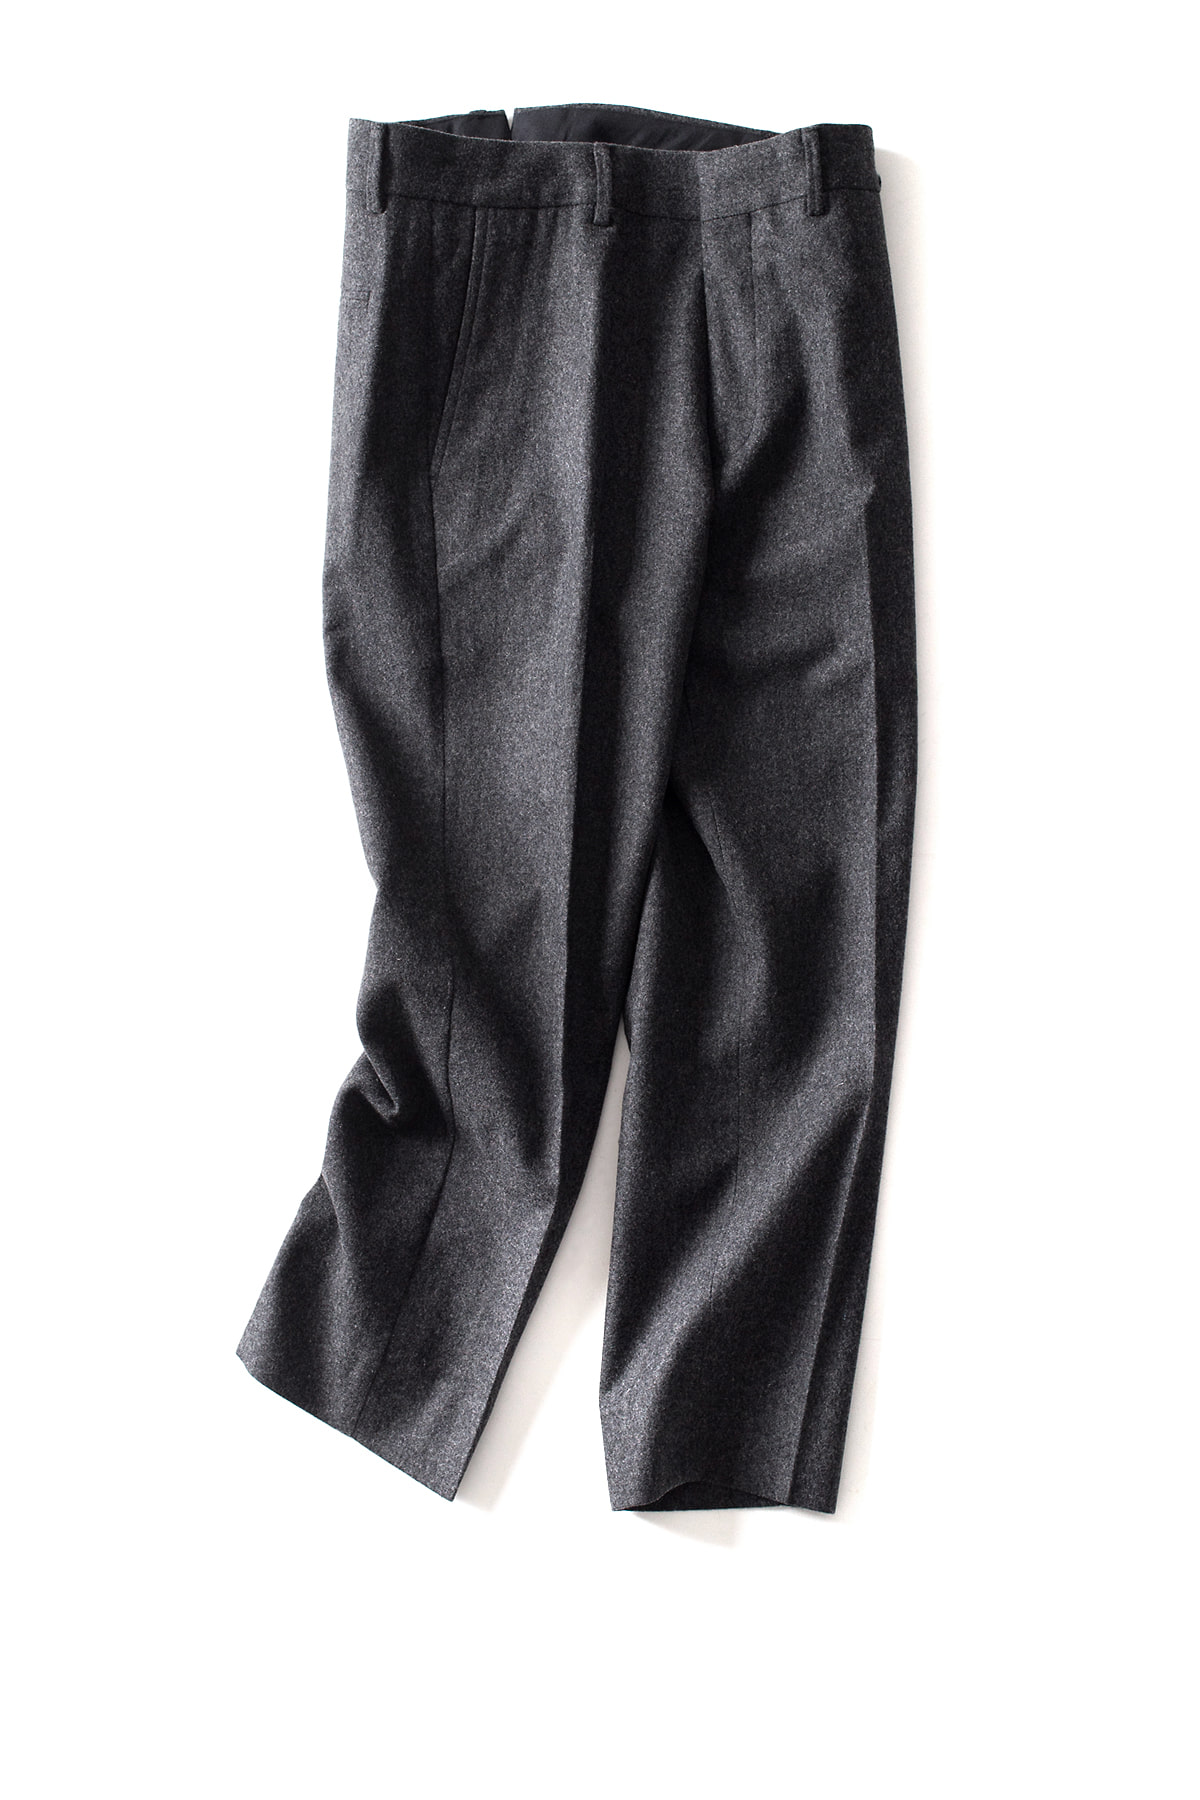 "Bedwin & The Heartbreakers : 9/L Cordura Wool Pants ""JESSEE"" (Charcoal)"